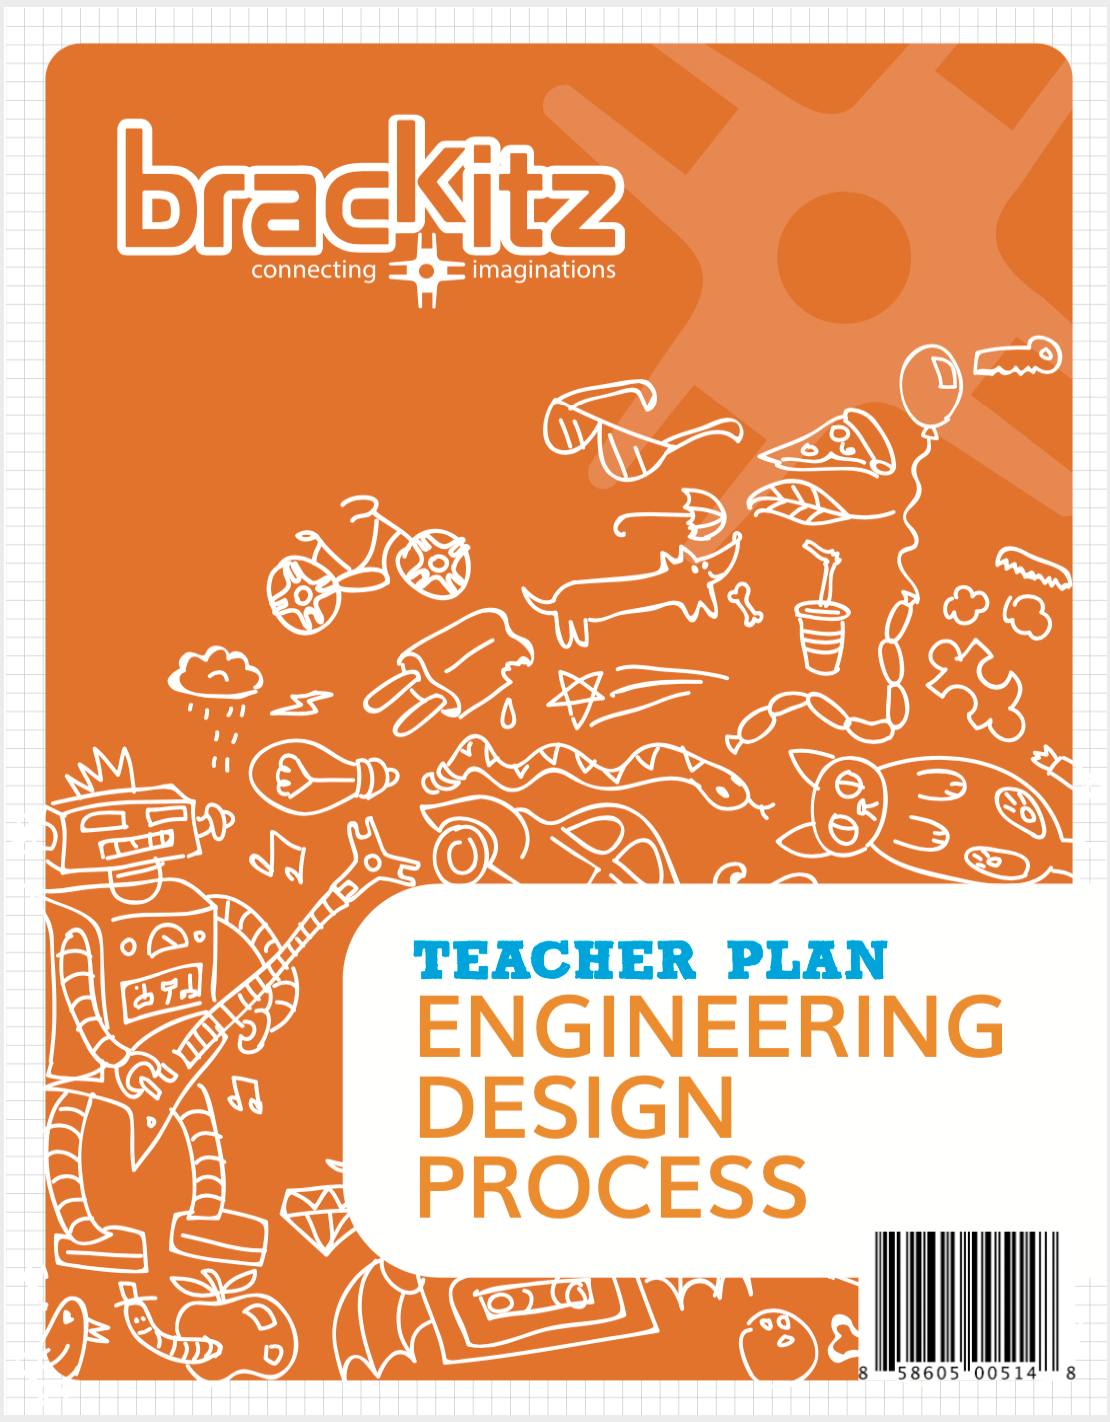 Brackitz Activities Booklet